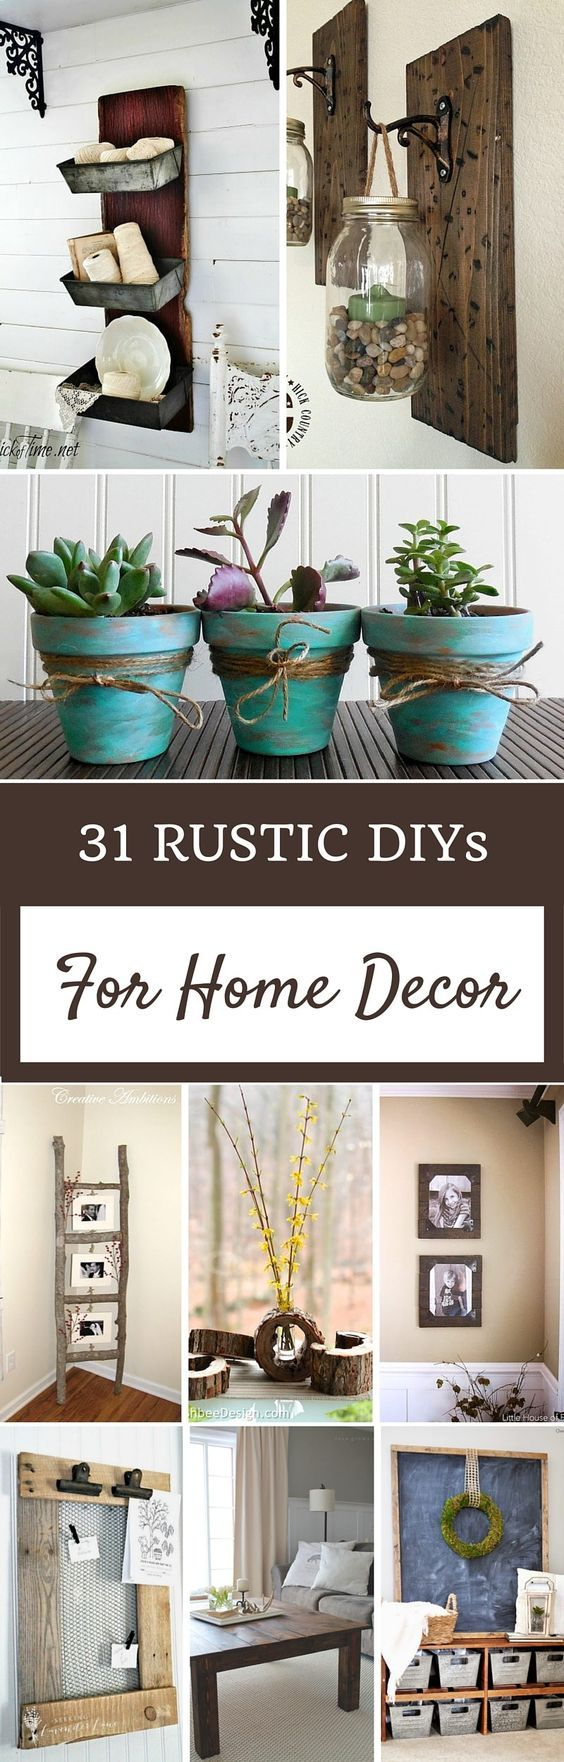 31 Rustic DIYs For Home Decor                                                                                                                                                                                 More photos to replace access panel